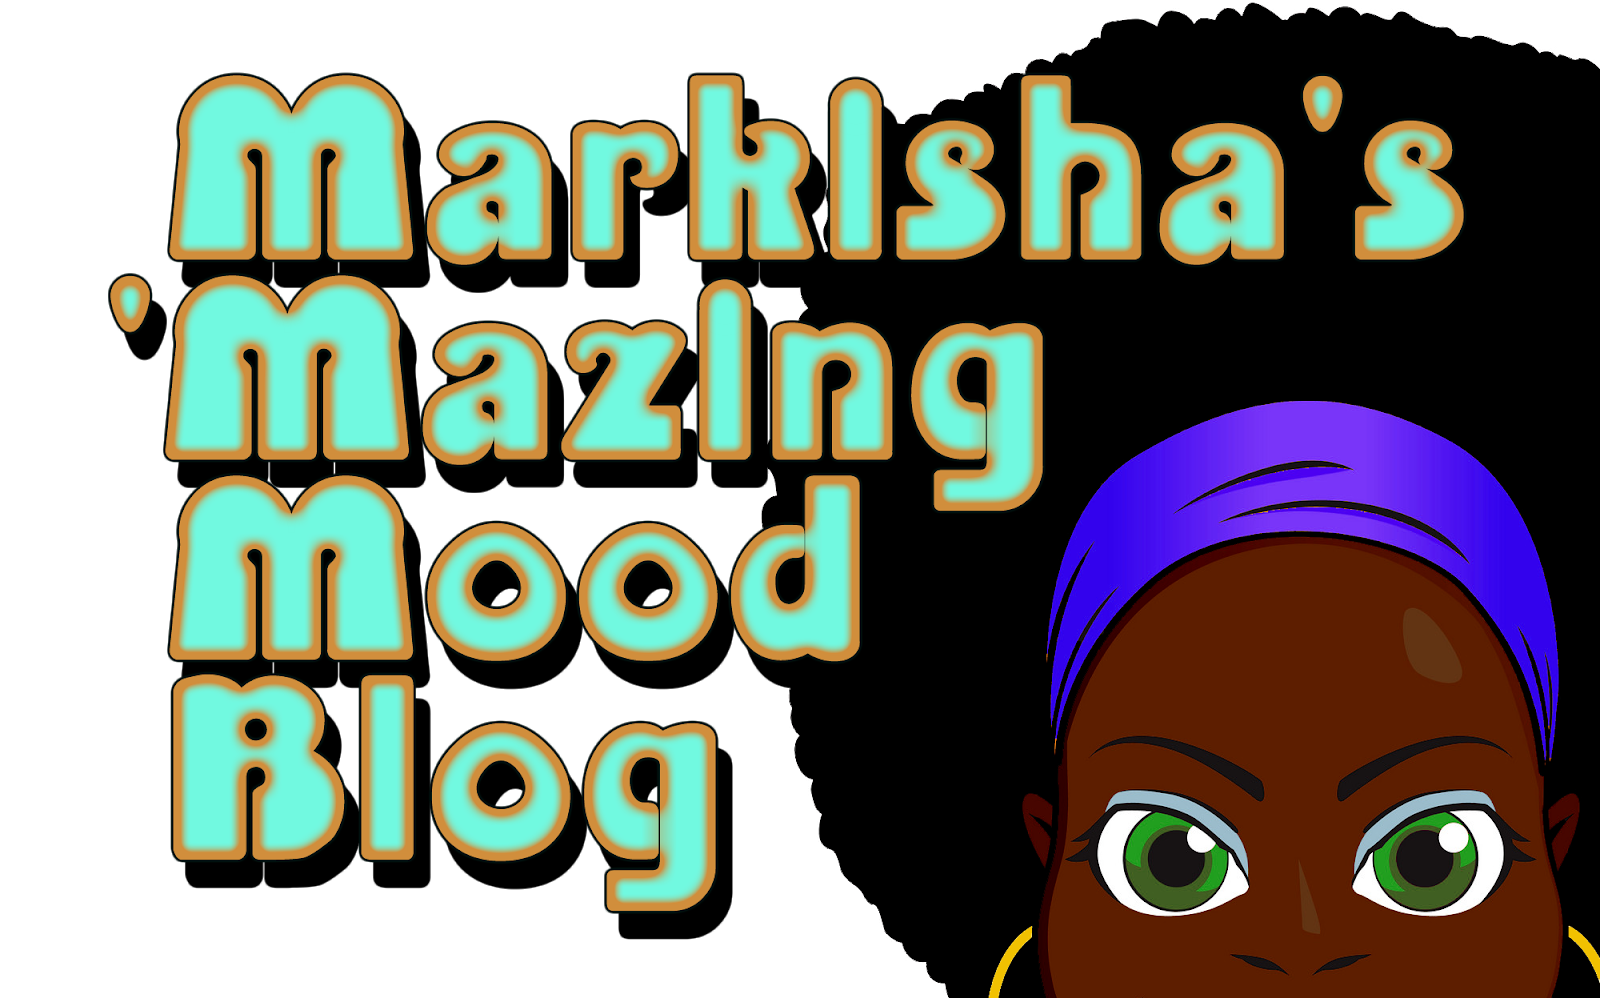 Markisha's 'Mazing Mood Blog